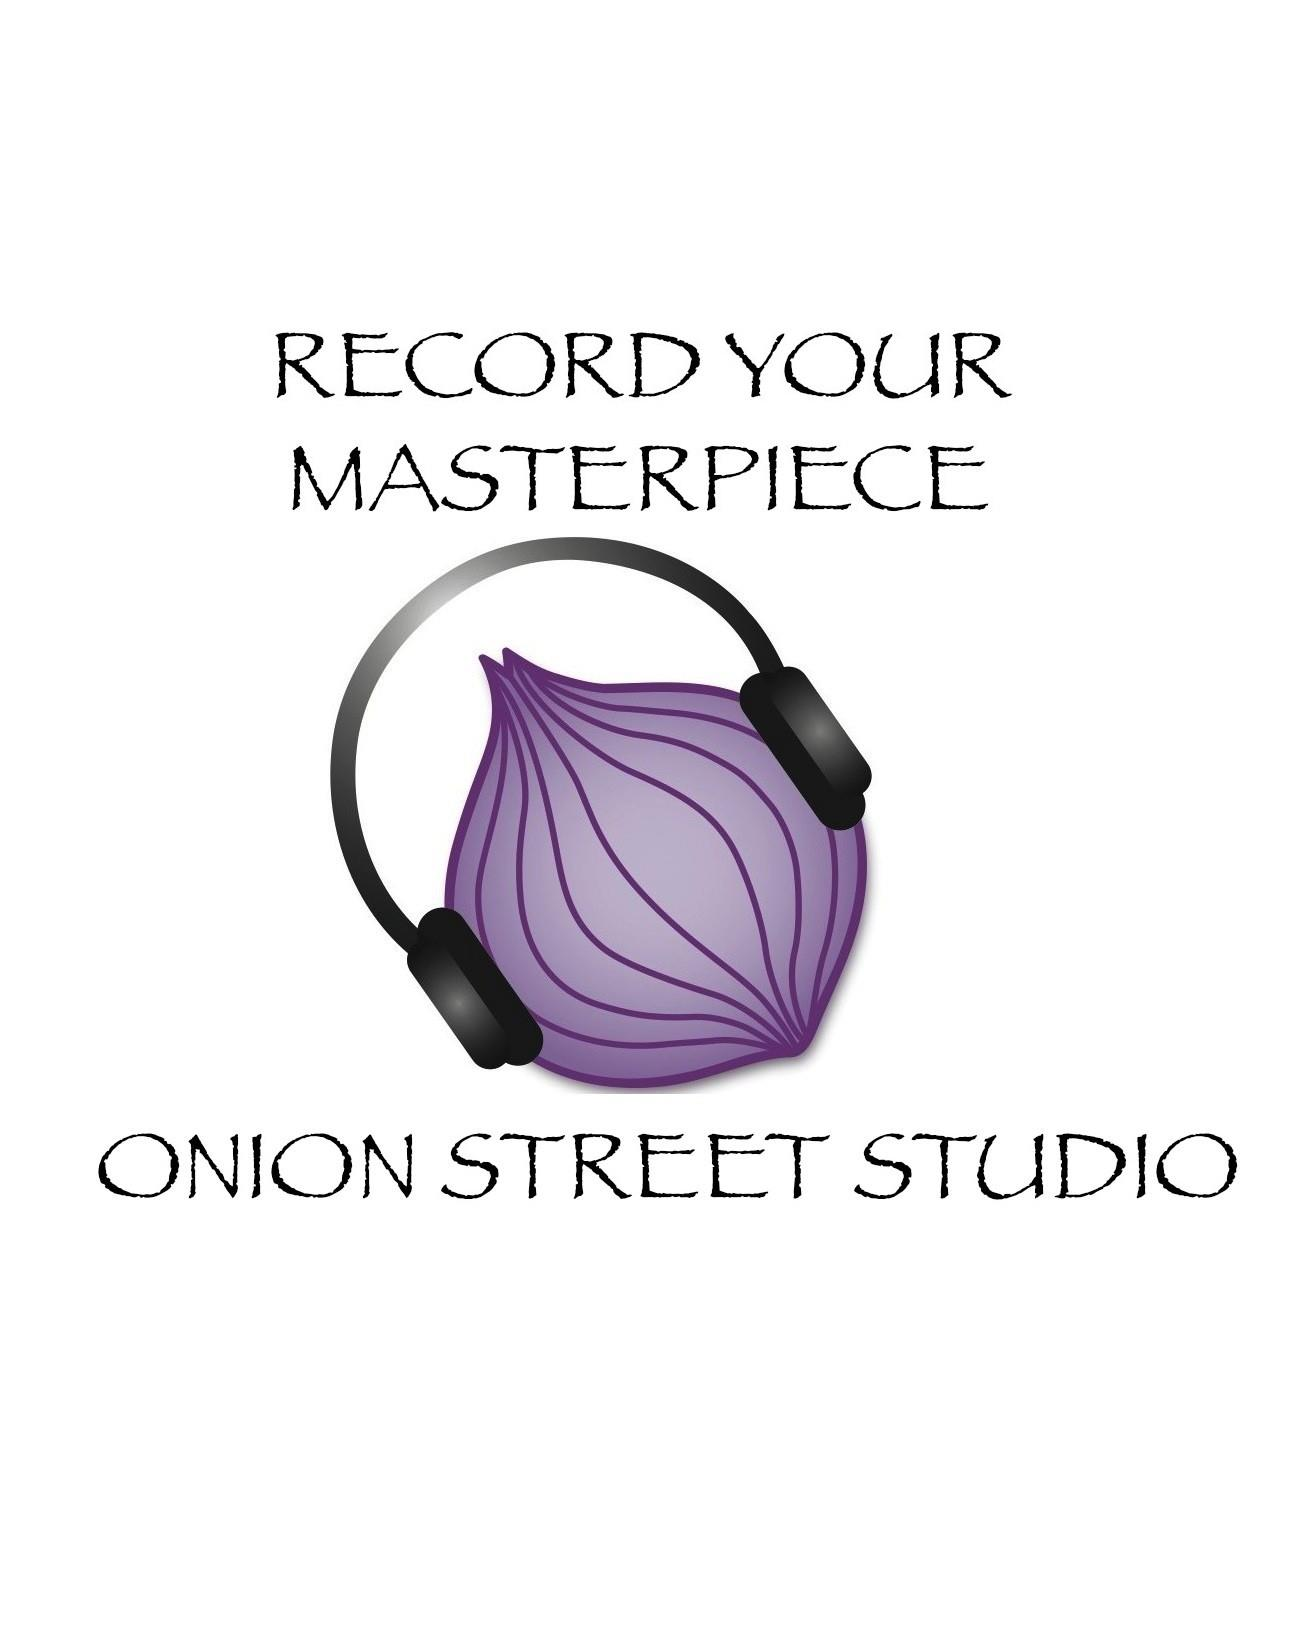 The Old Logo | Onion Street Studio